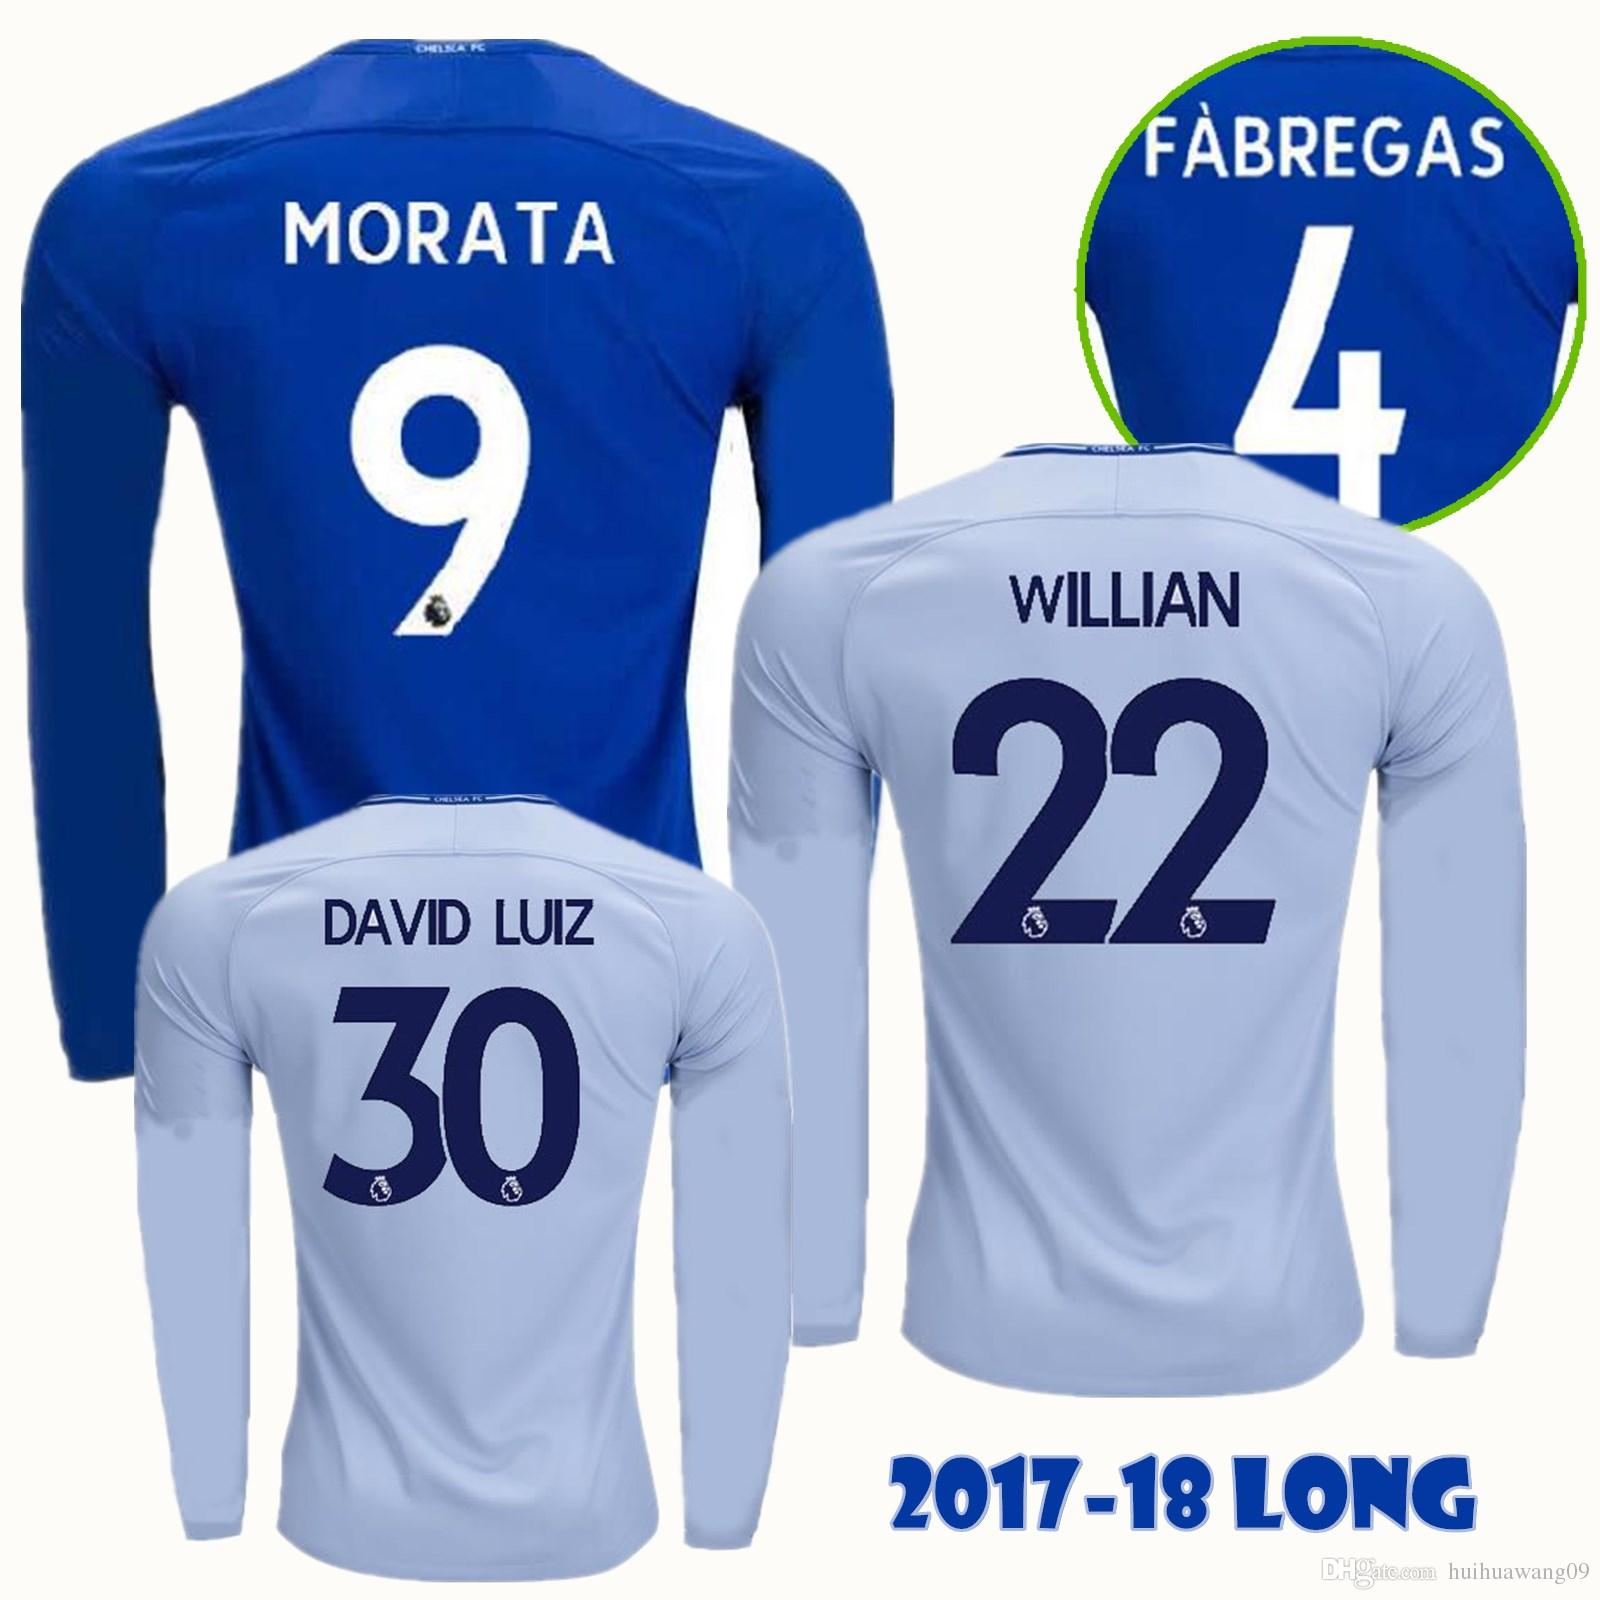 check out 530f6 df89d 2017-18 Long Home Away Chelsea Soccer Jerseys Willian Hazard Kante Fabregas  Diego Costa Pedro David Luiz Morata Batshuayi Football Shirt